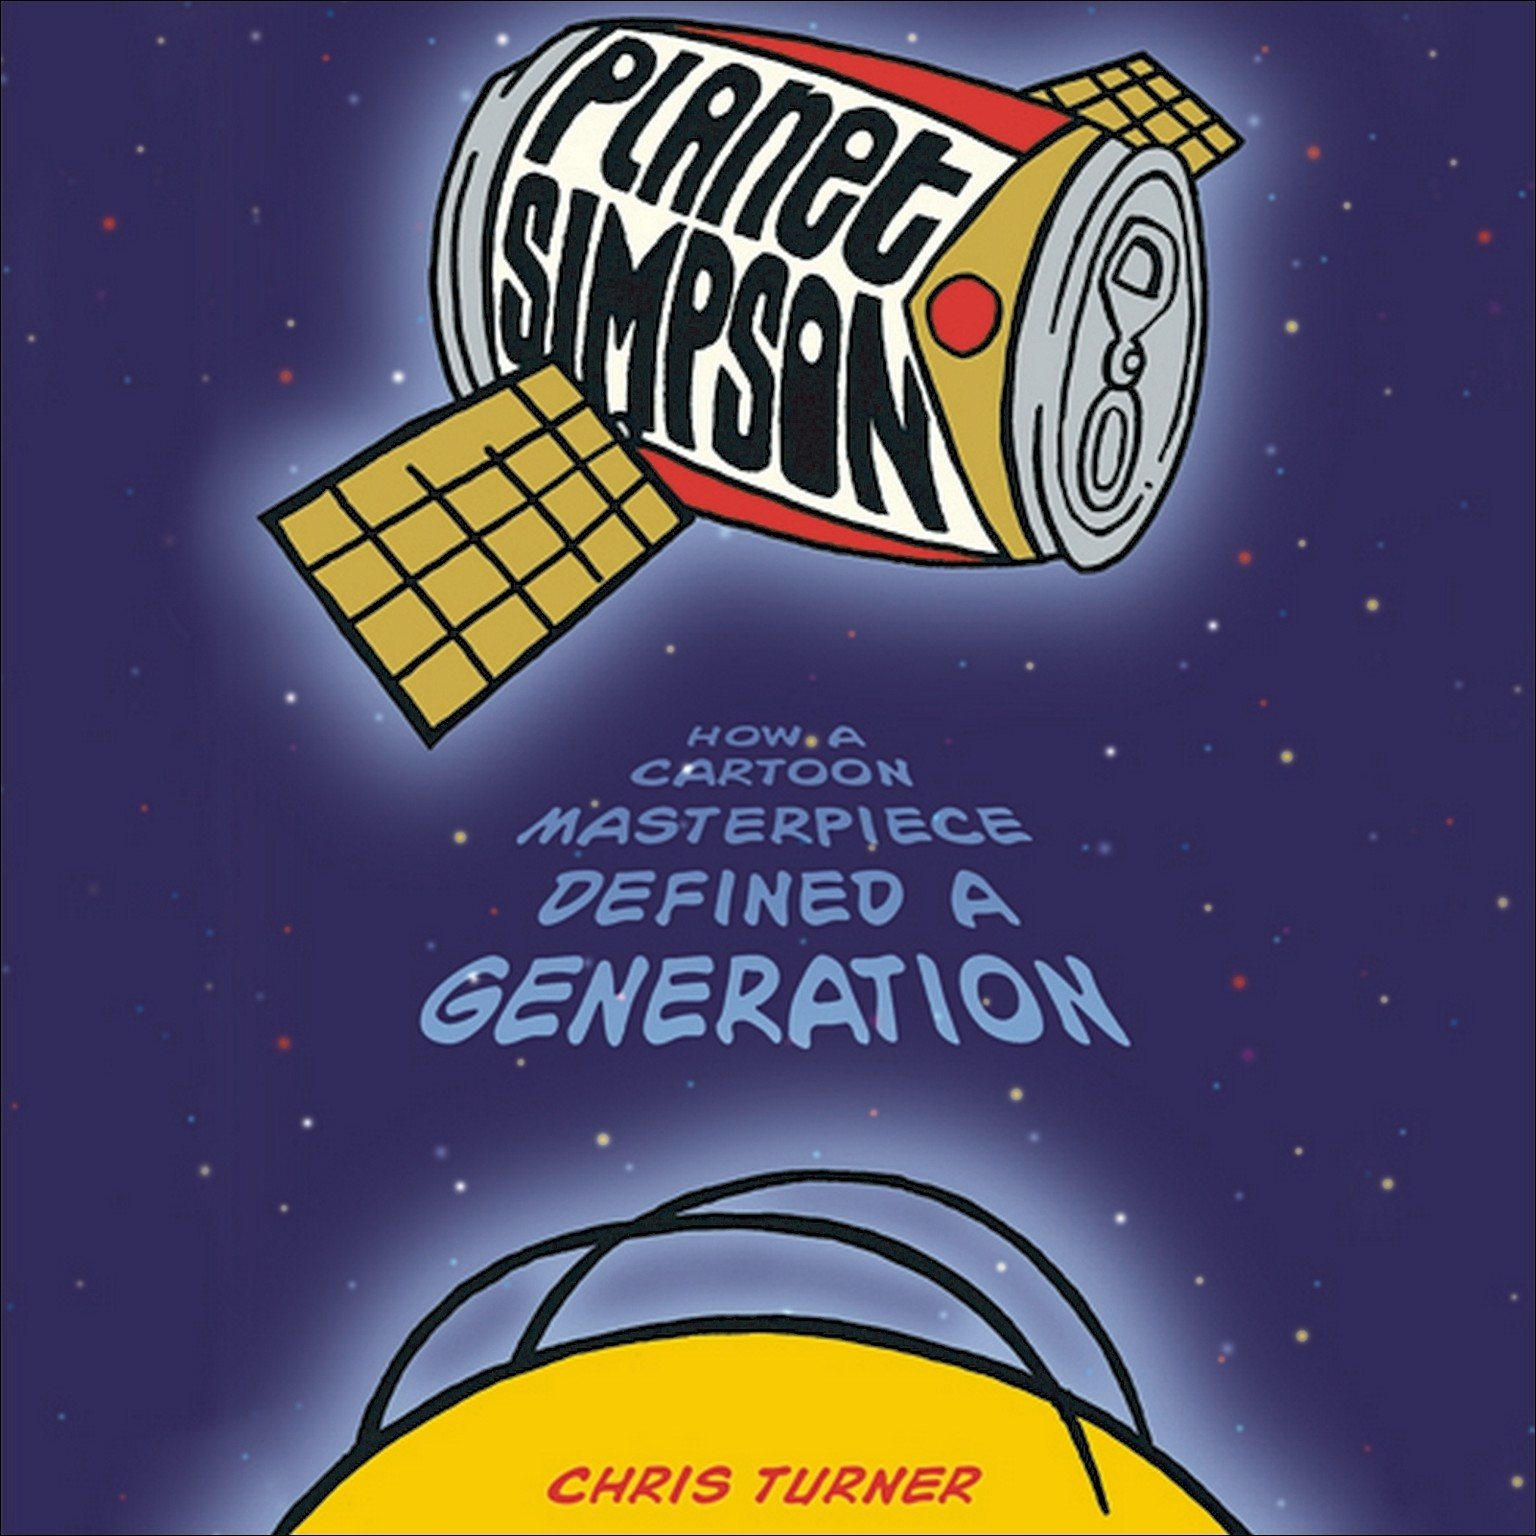 Printable Planet Simpson: How a Cartoon Masterpiece Documented an Era and Defined a Generation Audiobook Cover Art